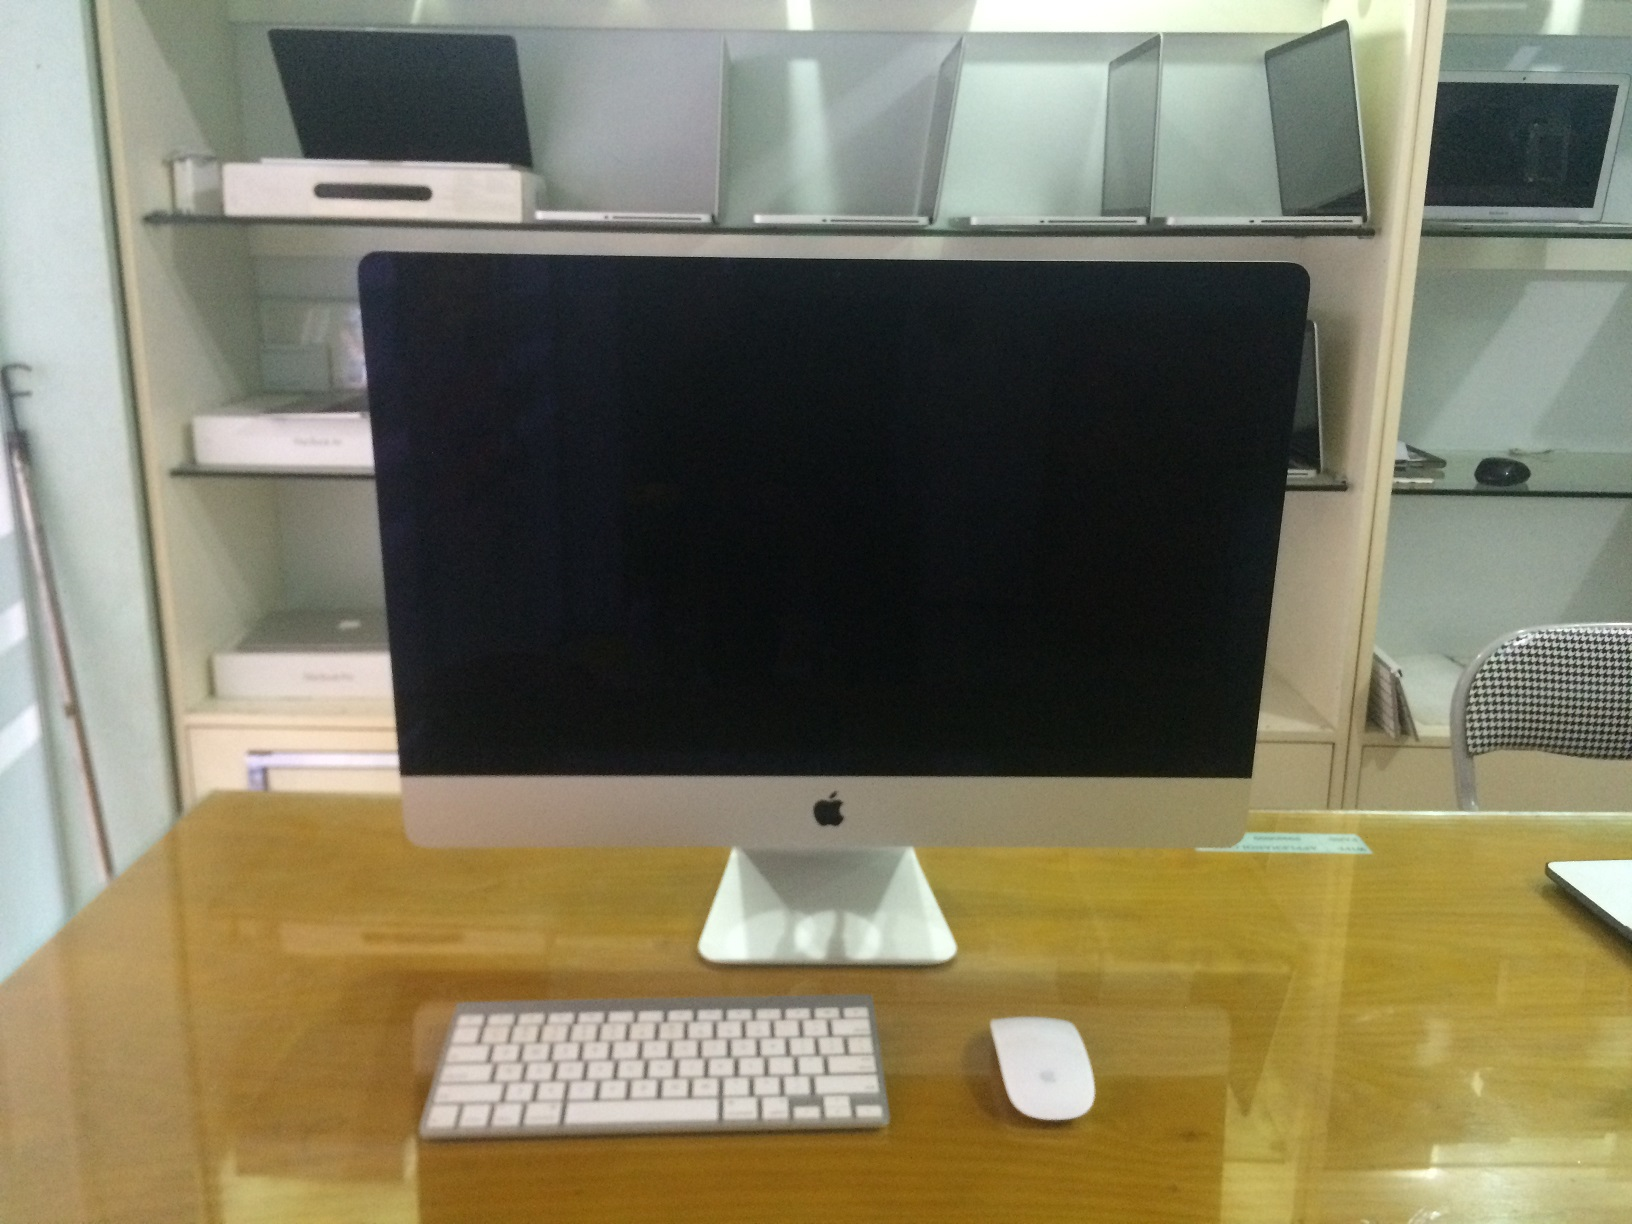 APPLE iMac ME086 LATE 2013 21.5 inch Quad core i5 2.7GHz SSD 256GB RAM 8GB 99%